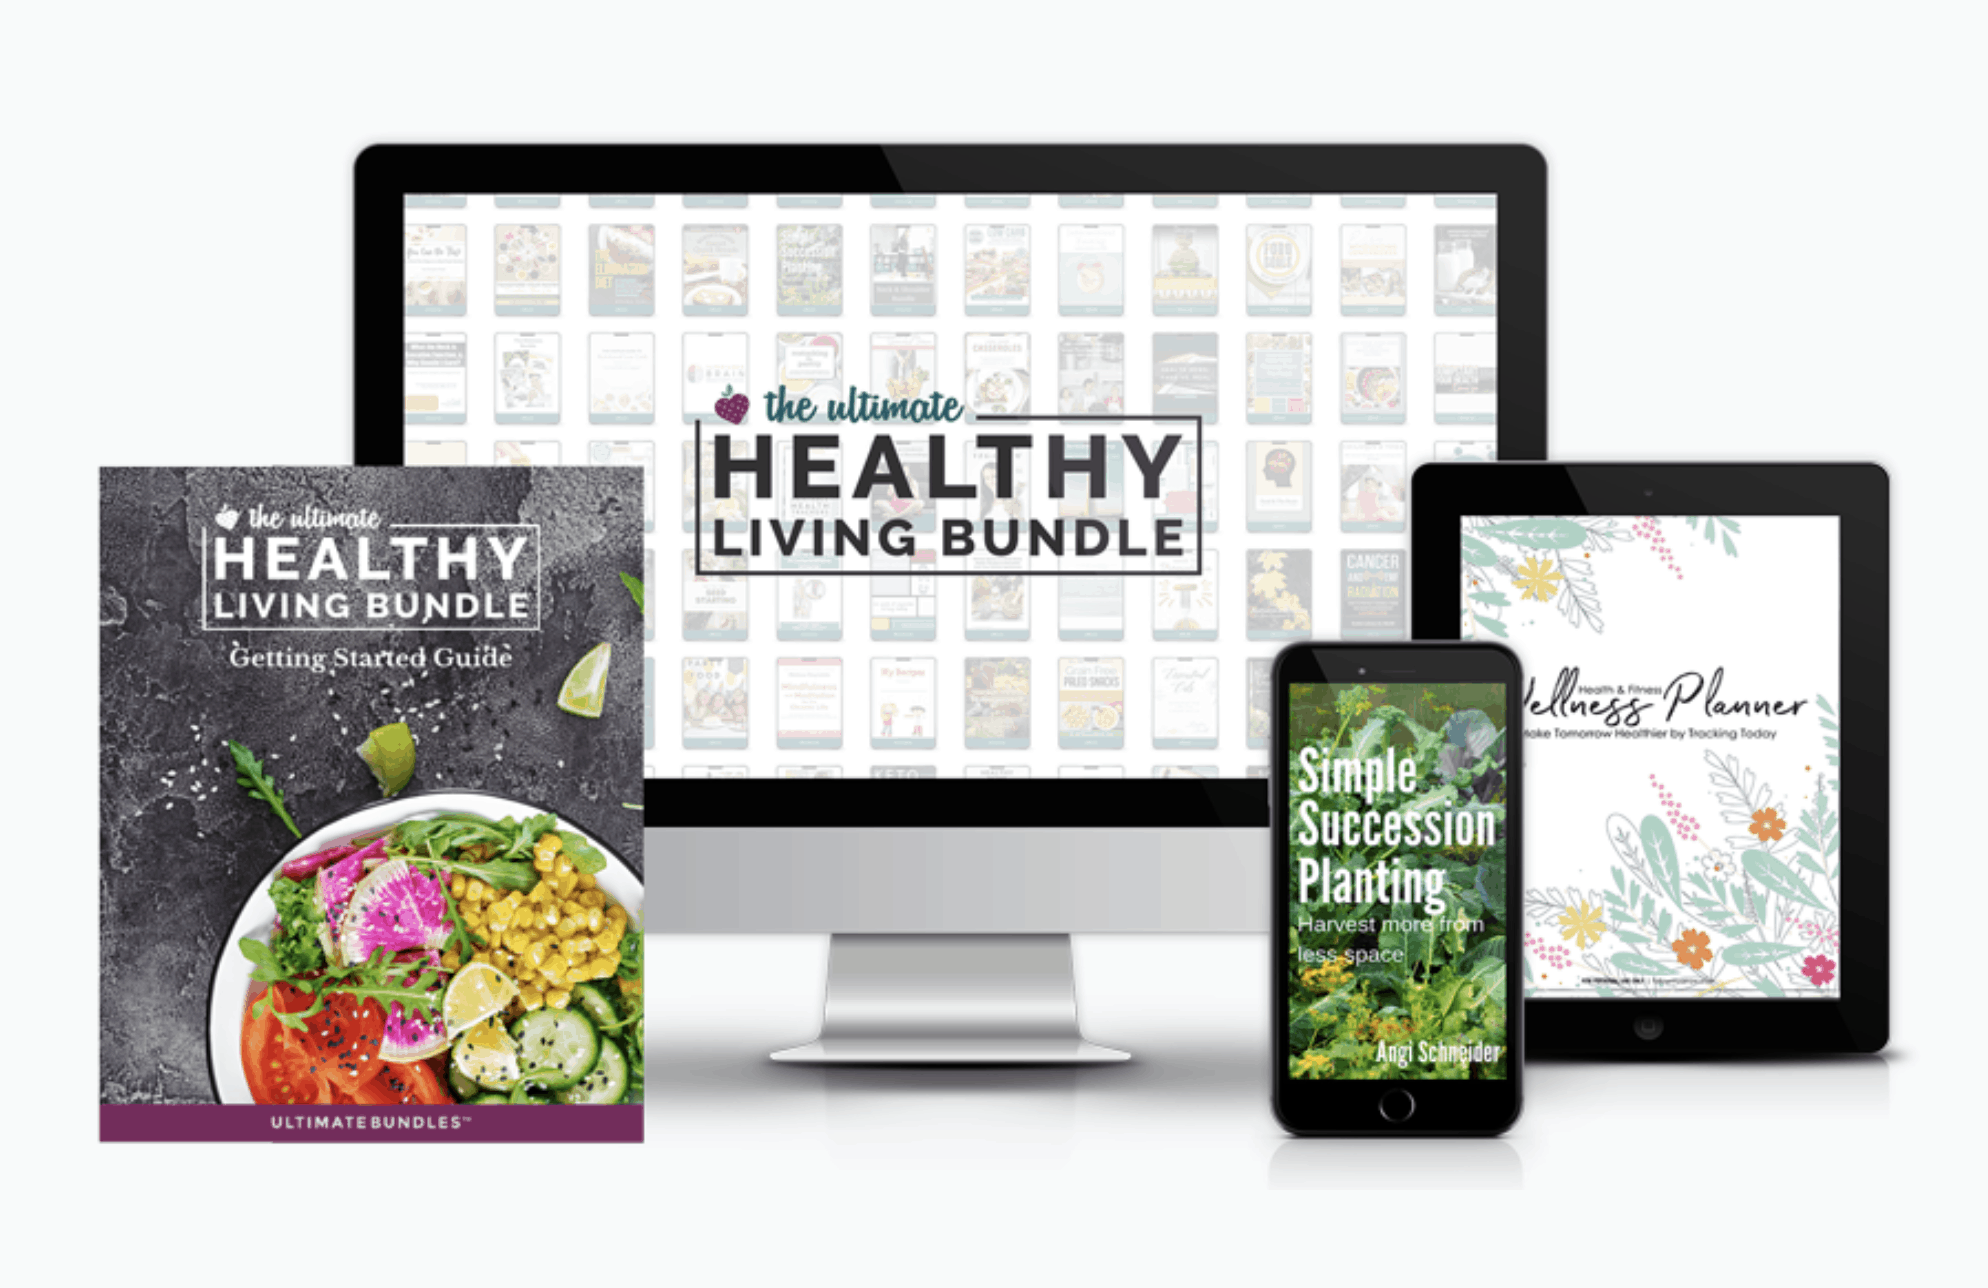 the ultimate healthy living bundle pictured on a book cover, a desktop, an iPad and a cell phone